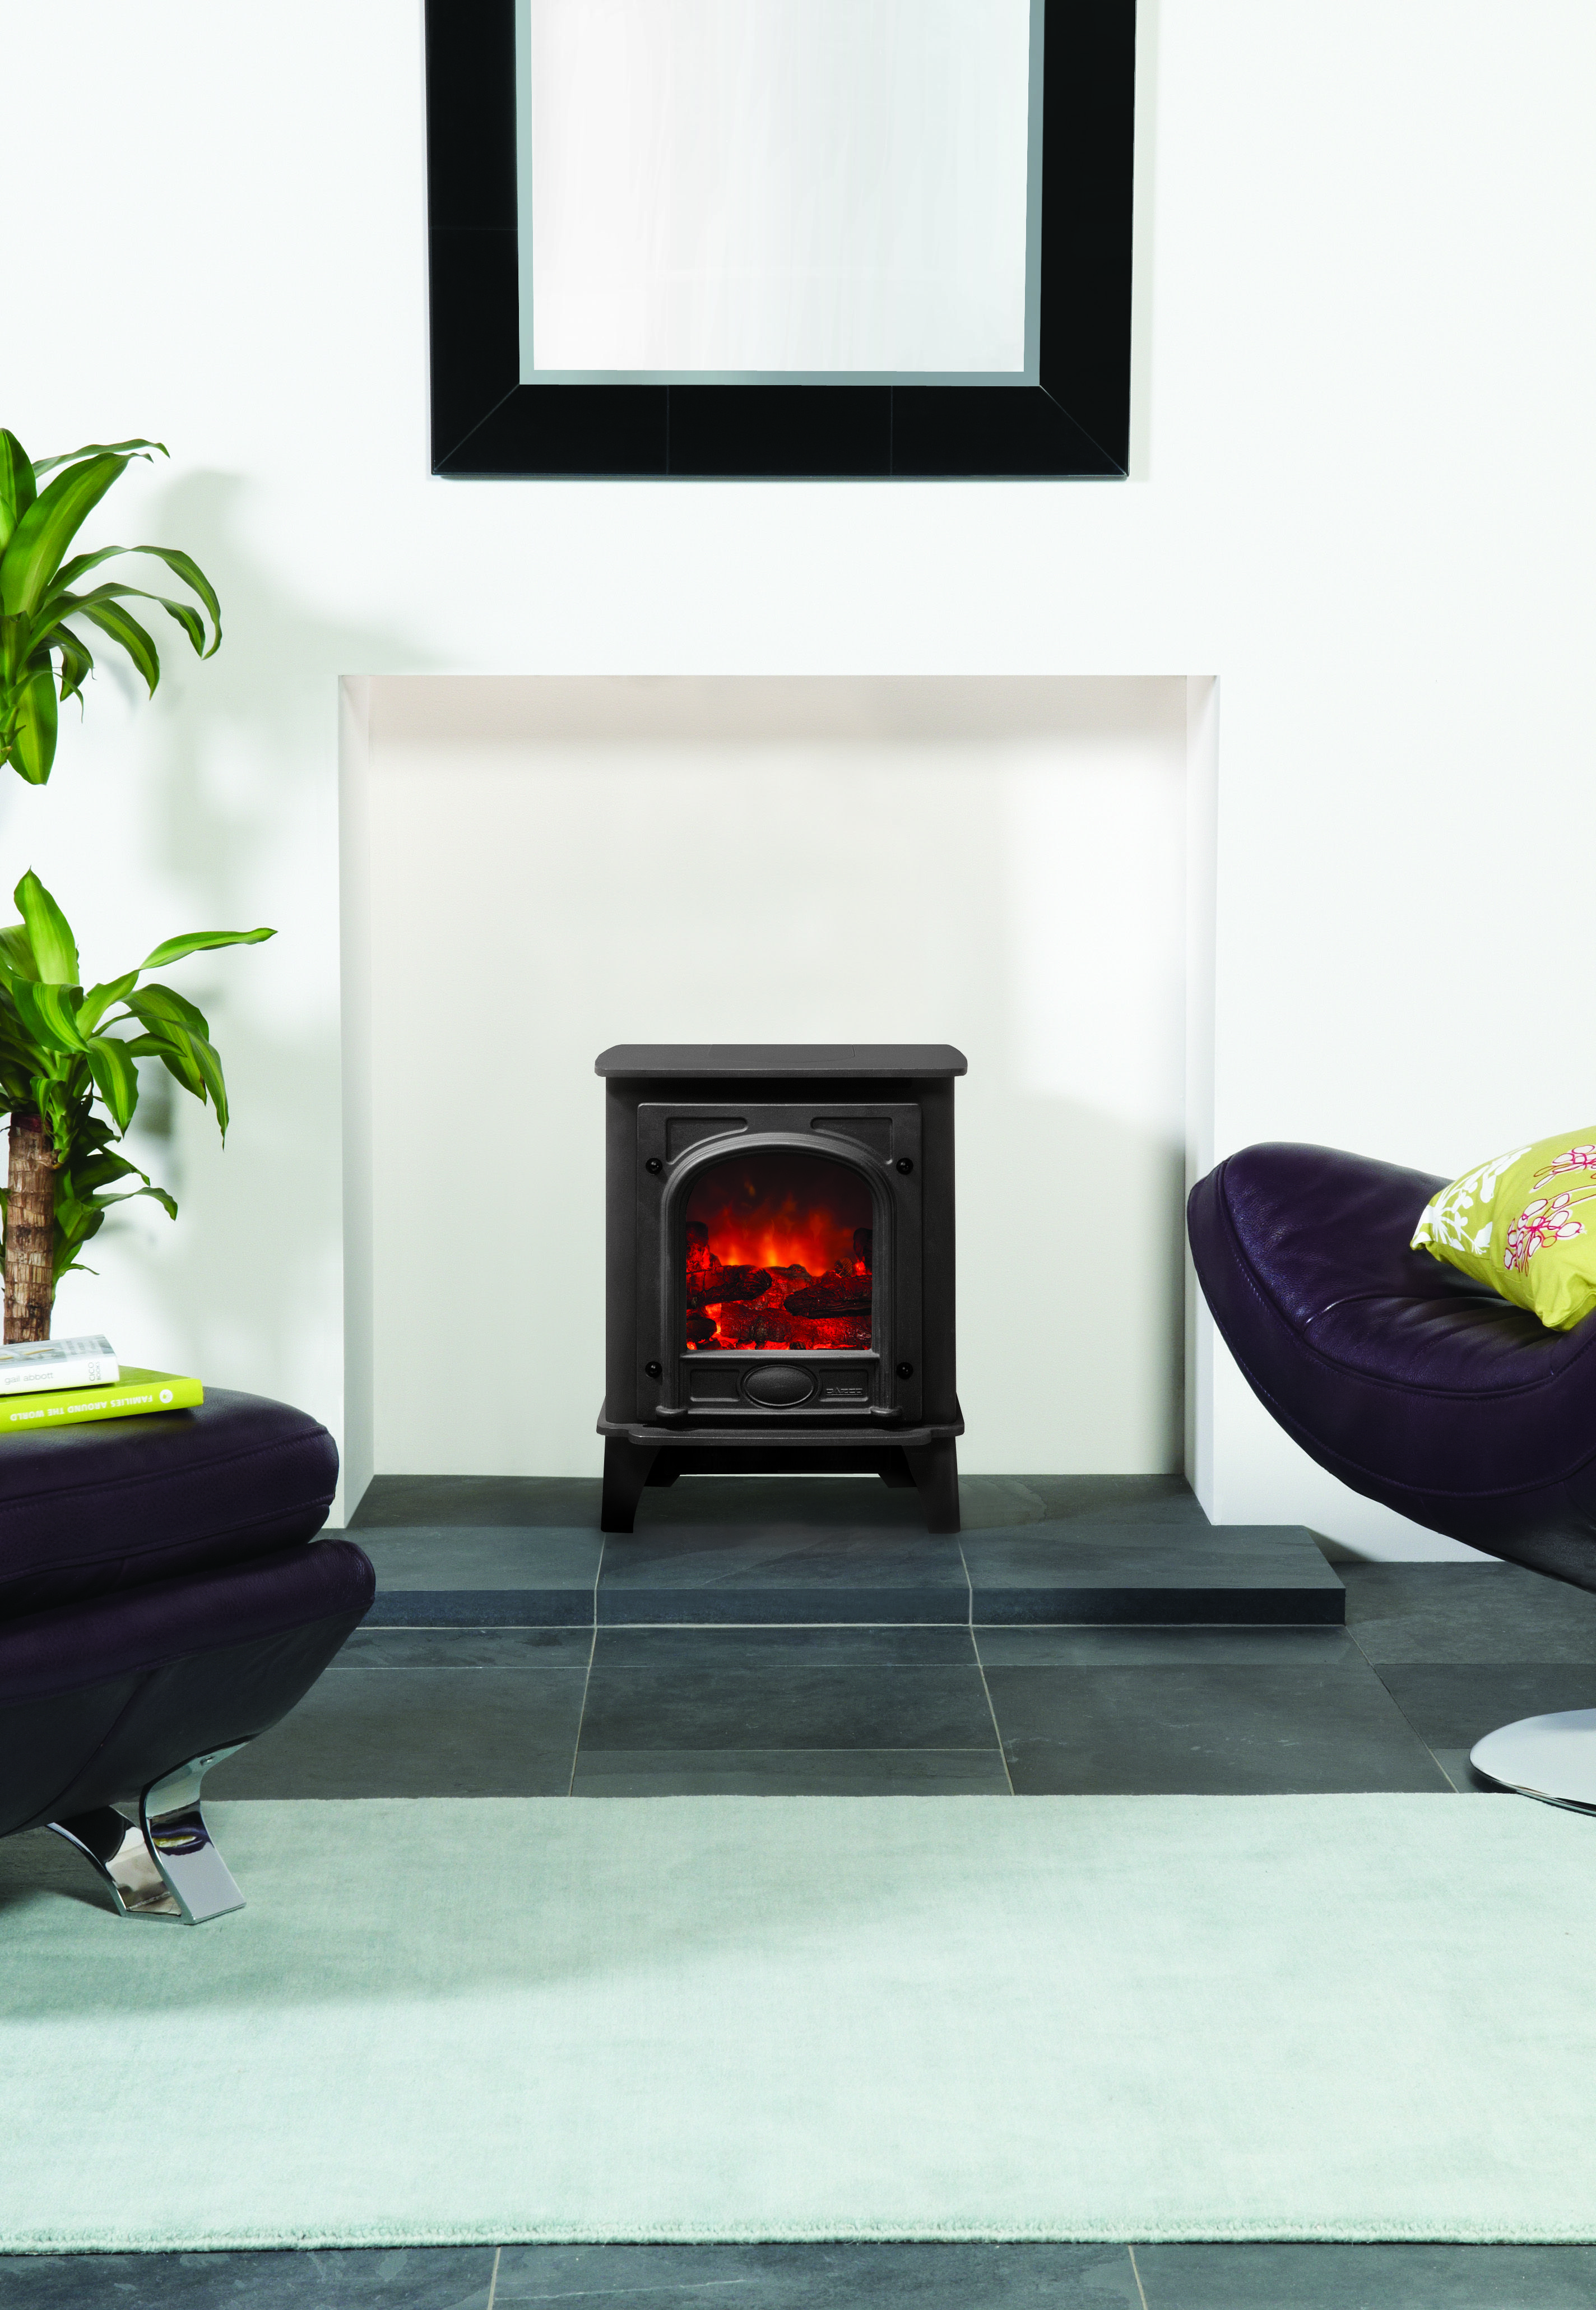 Small electric stockton stove fireplace stove heating stoves in